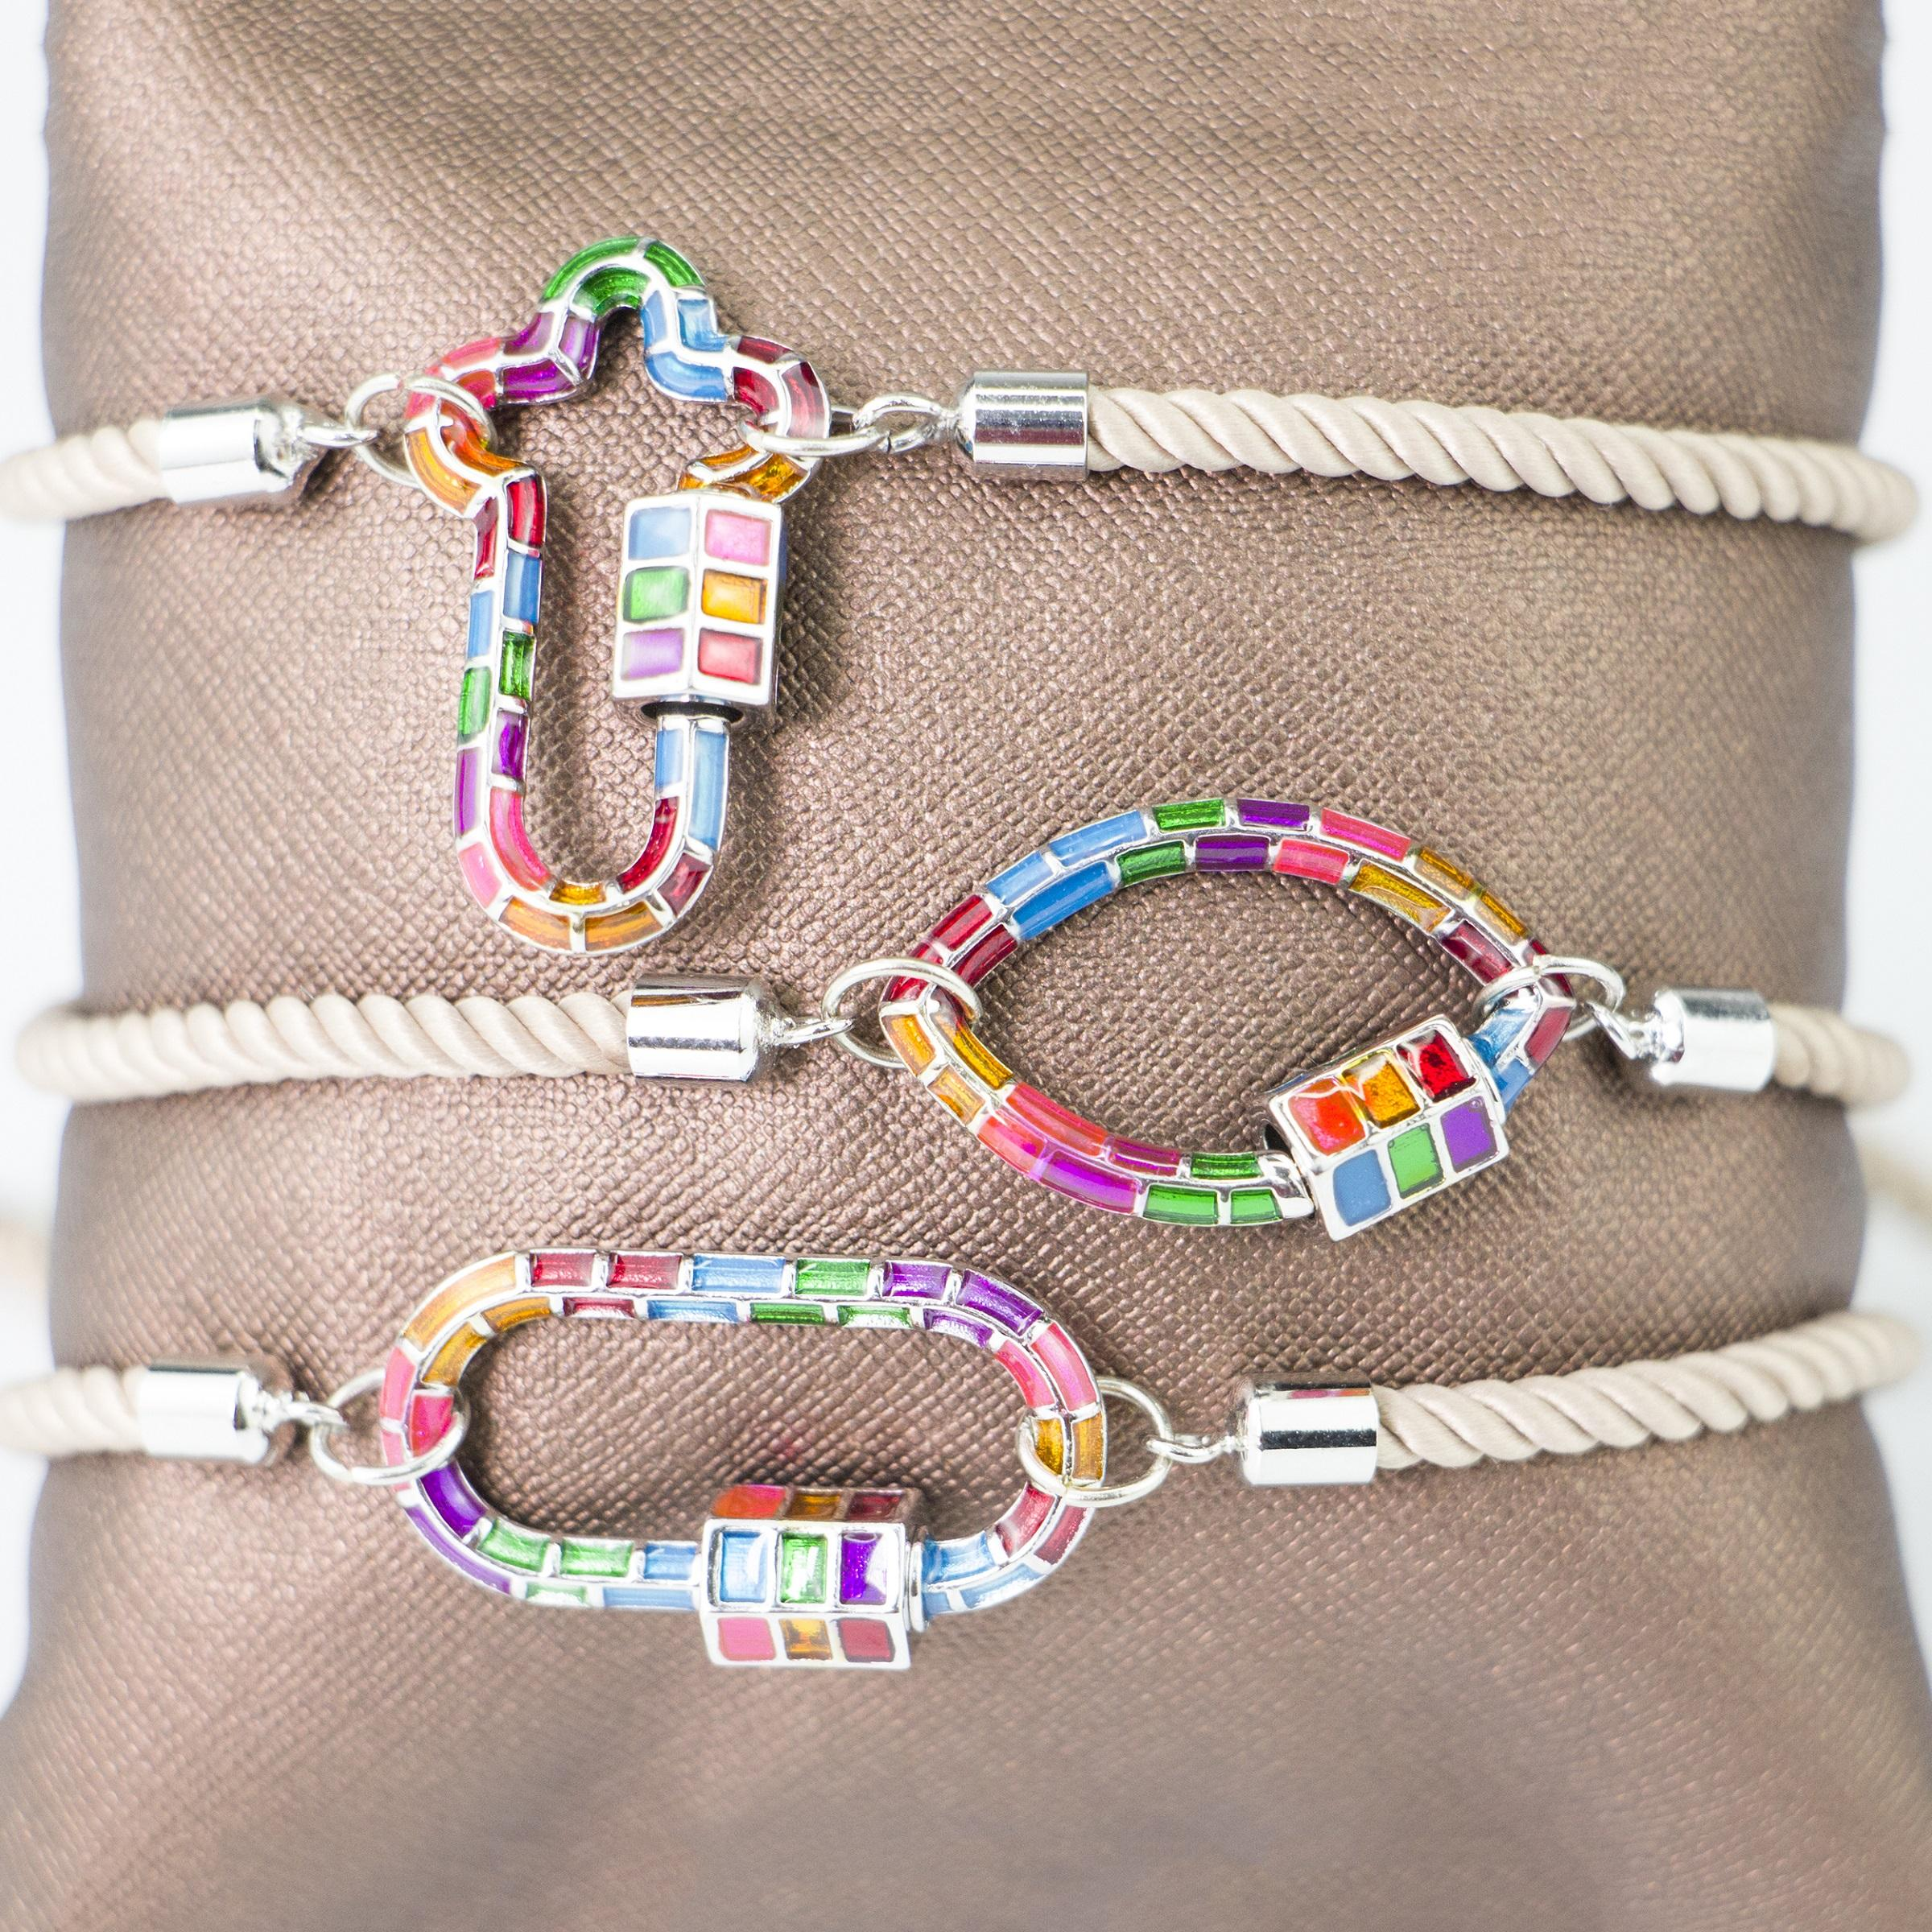 LS-A2264 multi color cross/rectangle shaped clasp cz enamel charm bracelet adjustable rope string bracelet